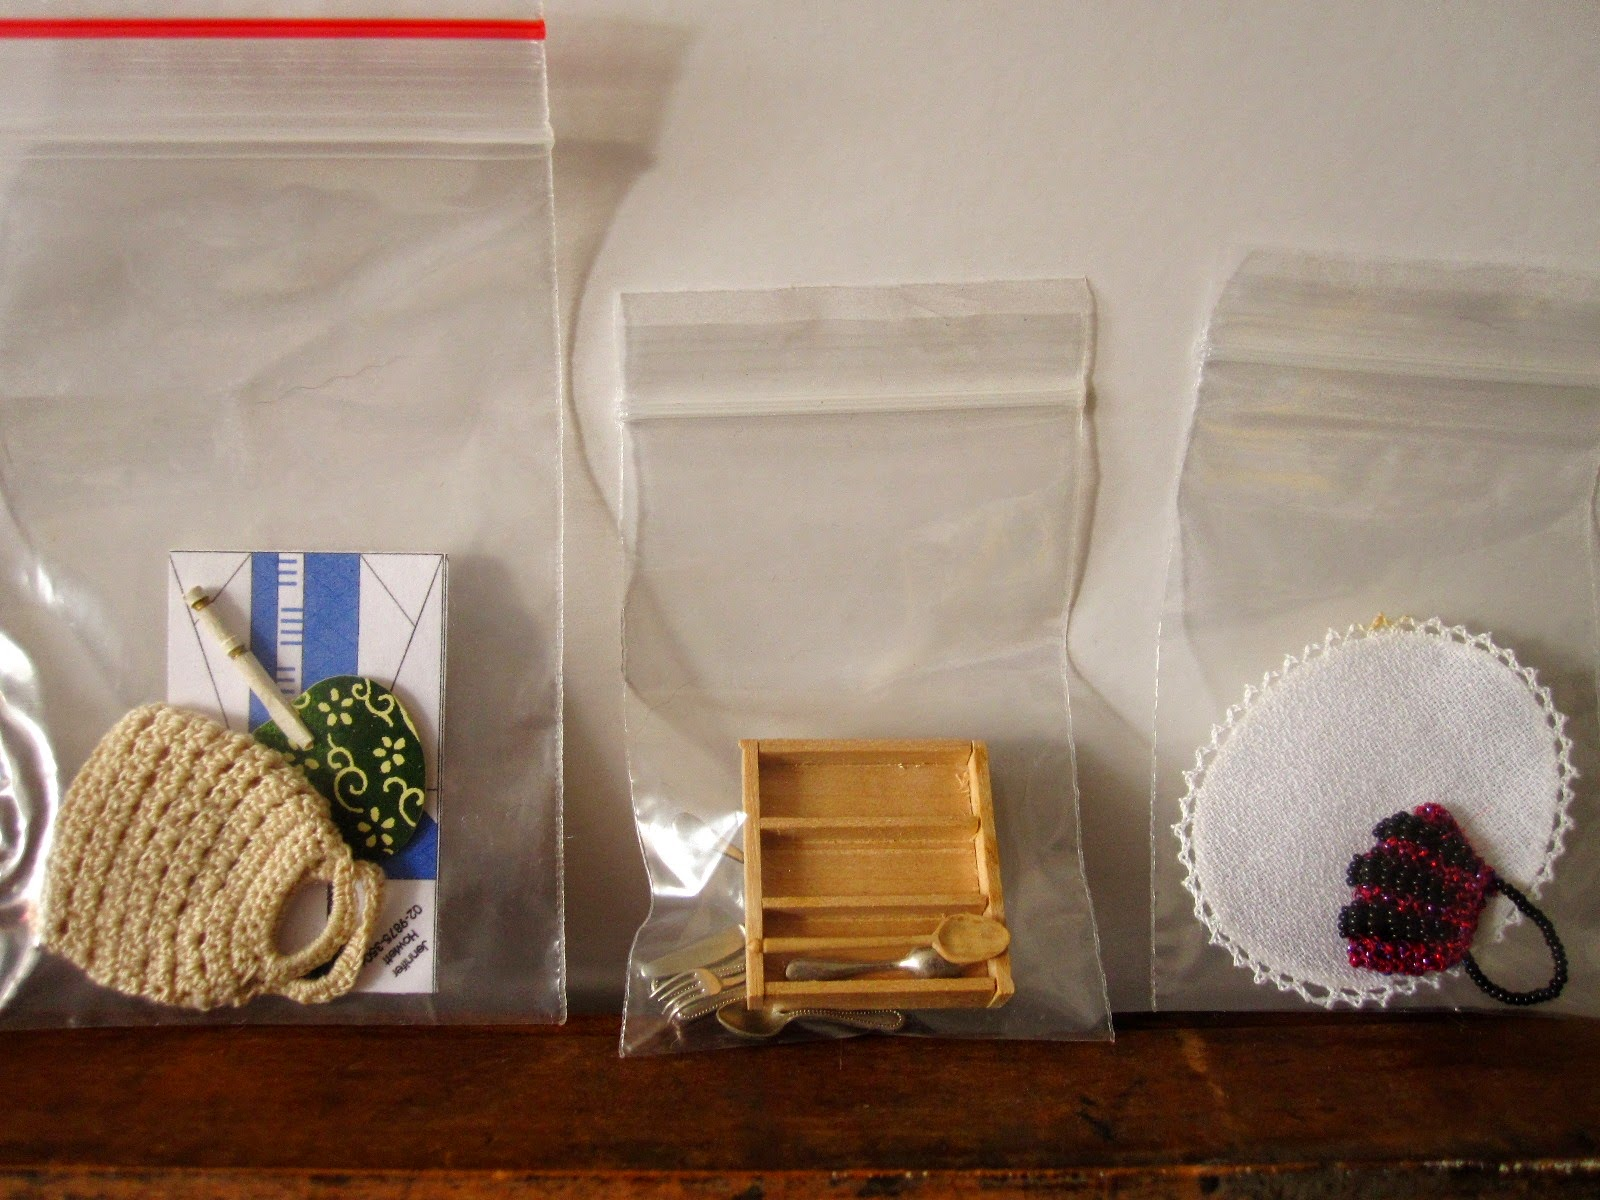 Three bags of miniature dolls' house accessories including a crocheted shopping bag, a cutlery tray and a tray cloth with crocheted edge.